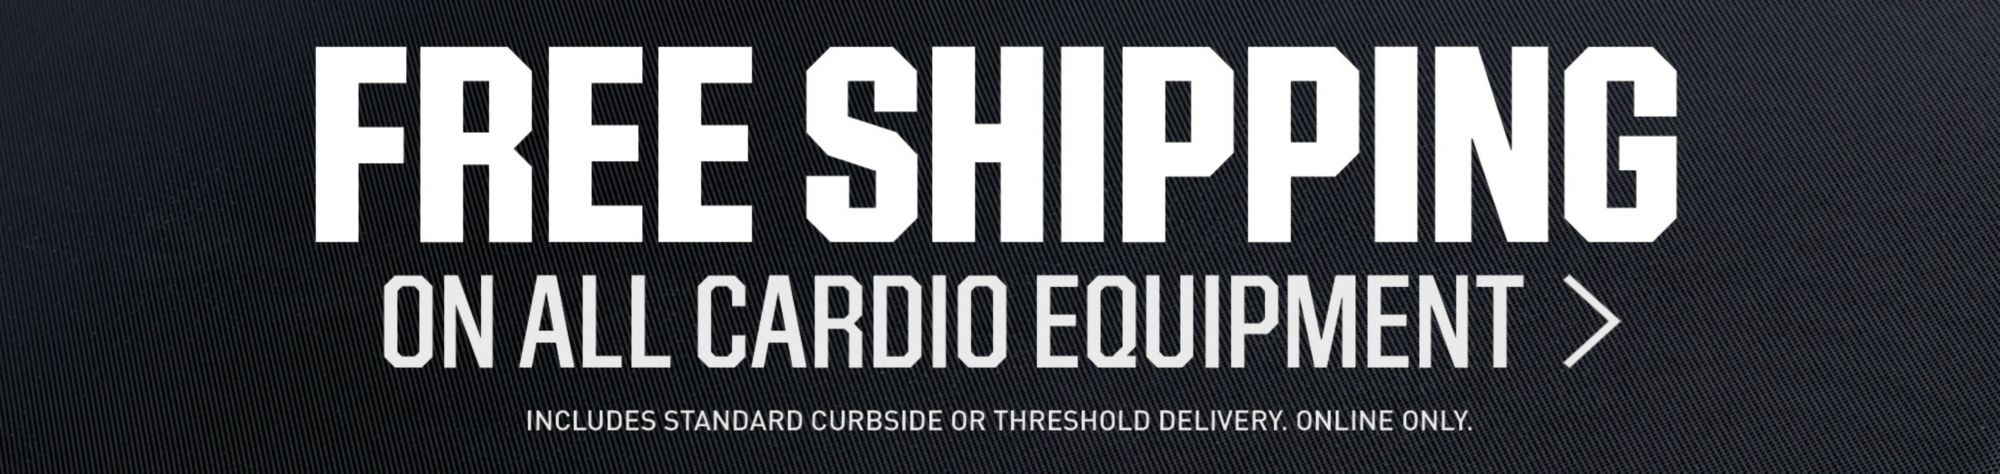 Free Shipping On All Cardio Equipment